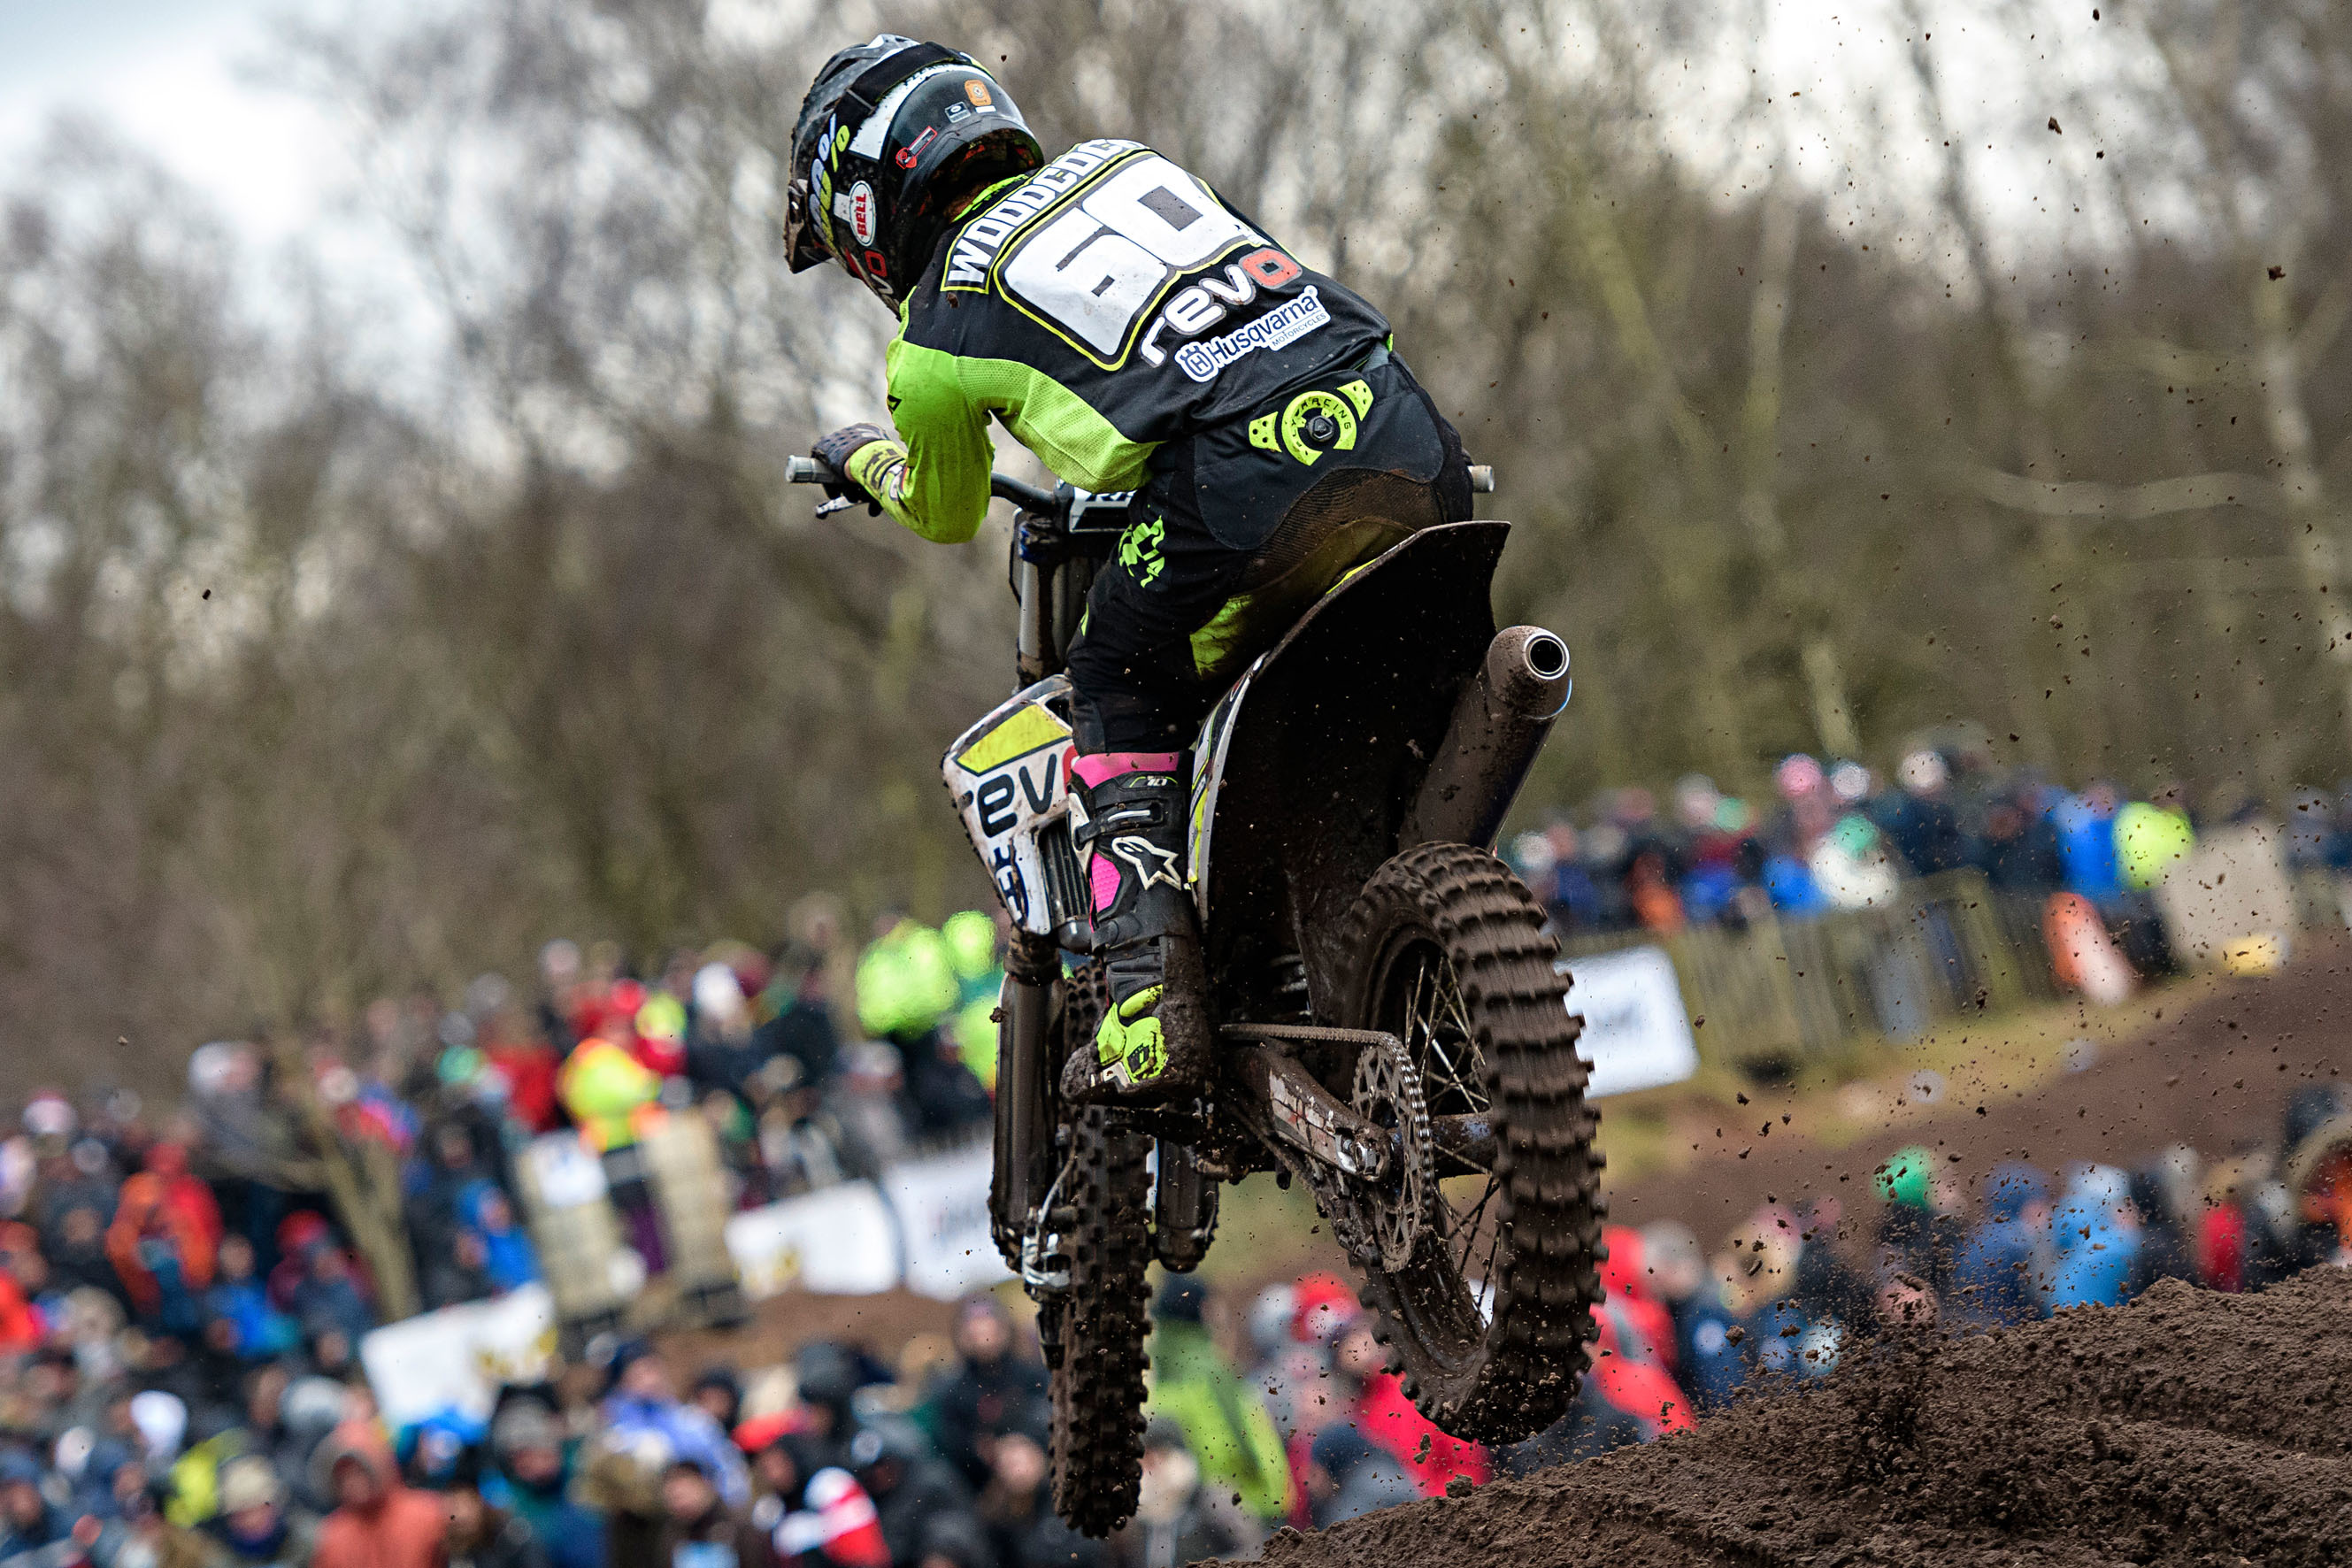 Hawkstone_International_2018_REVO_NL433.jpg#asset:4823